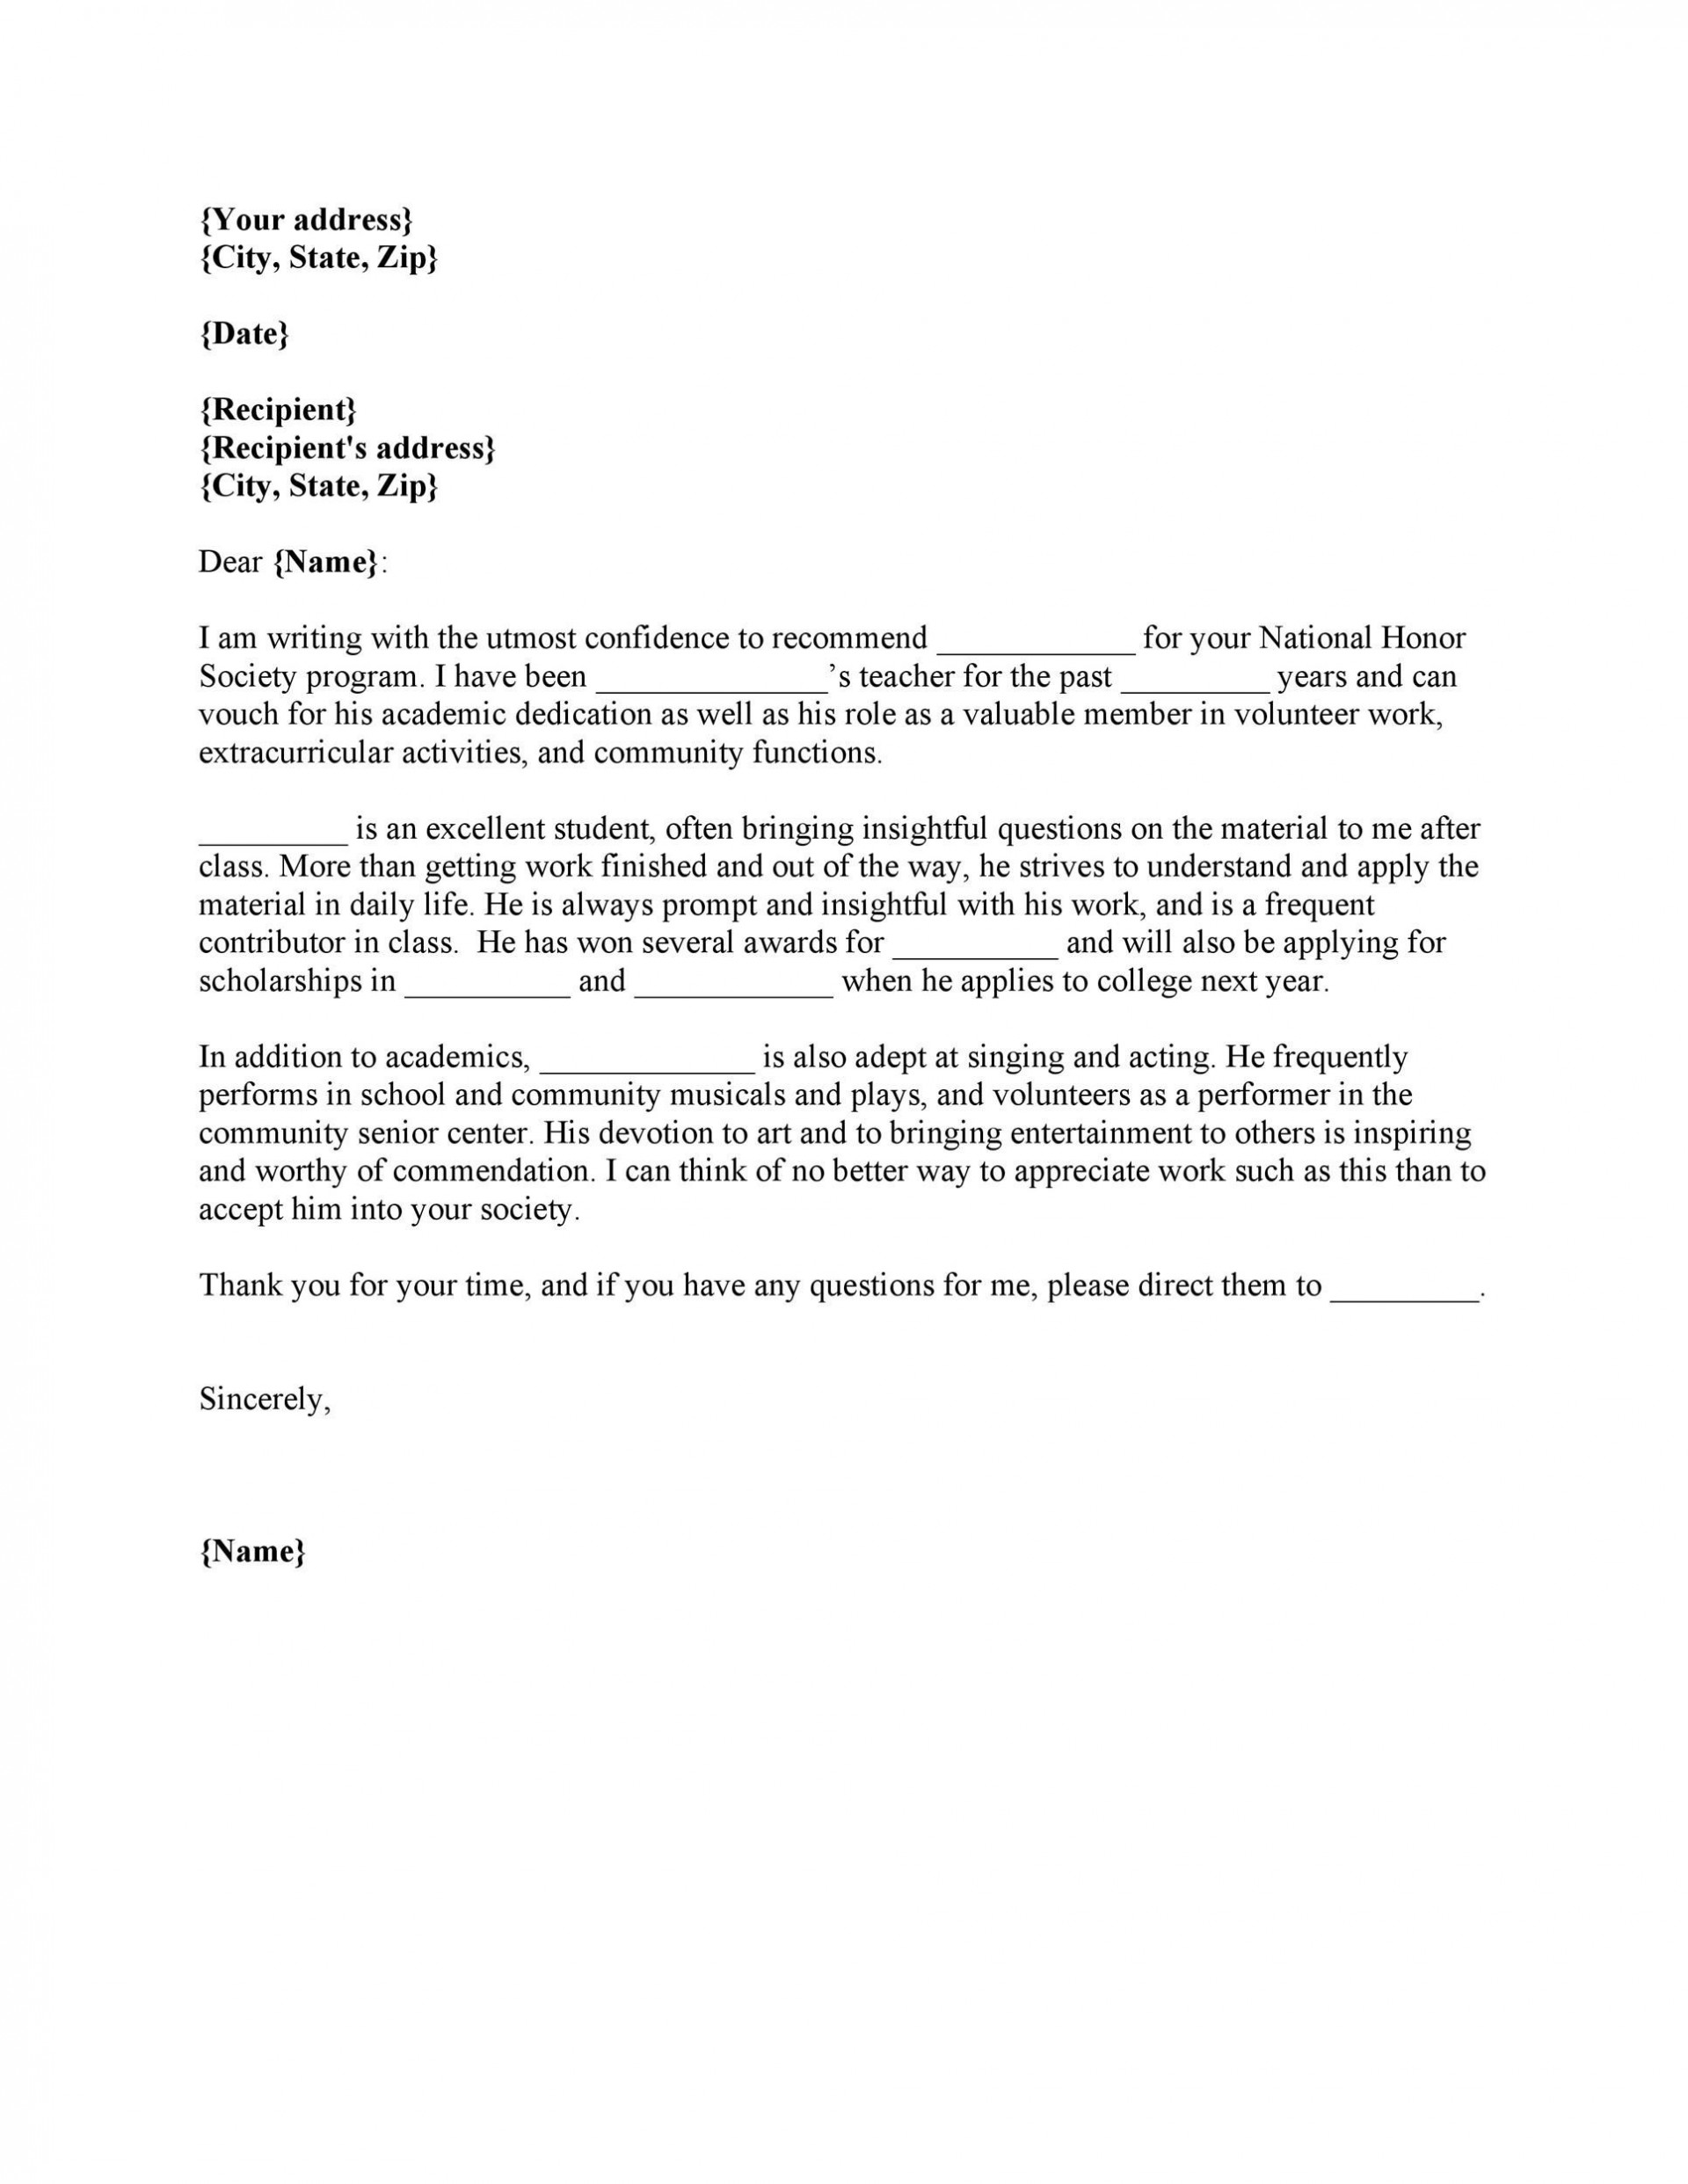 005 Best College Letter Of Recommendation Template Inspiration  Writing Scholarship From Employer1920